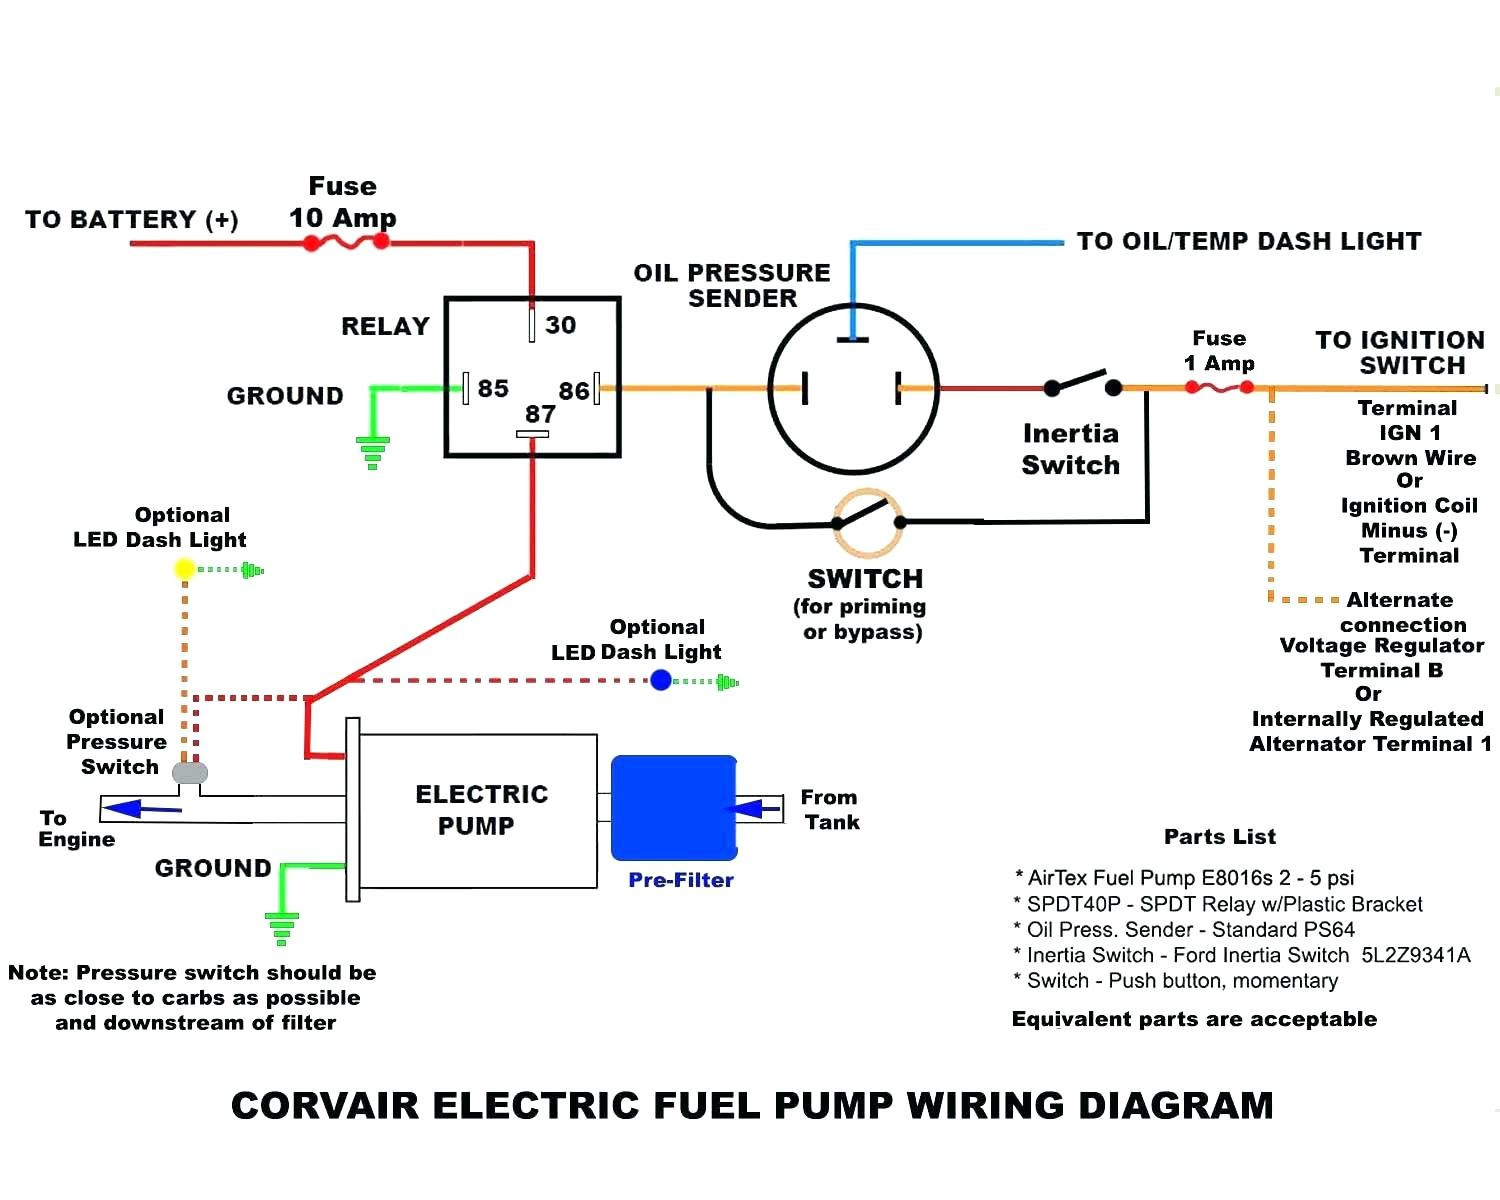 hight resolution of 89 s13 fuse box wiring libraryelectric fuel pump wiring diagram wiring diagram image 240sx history 96